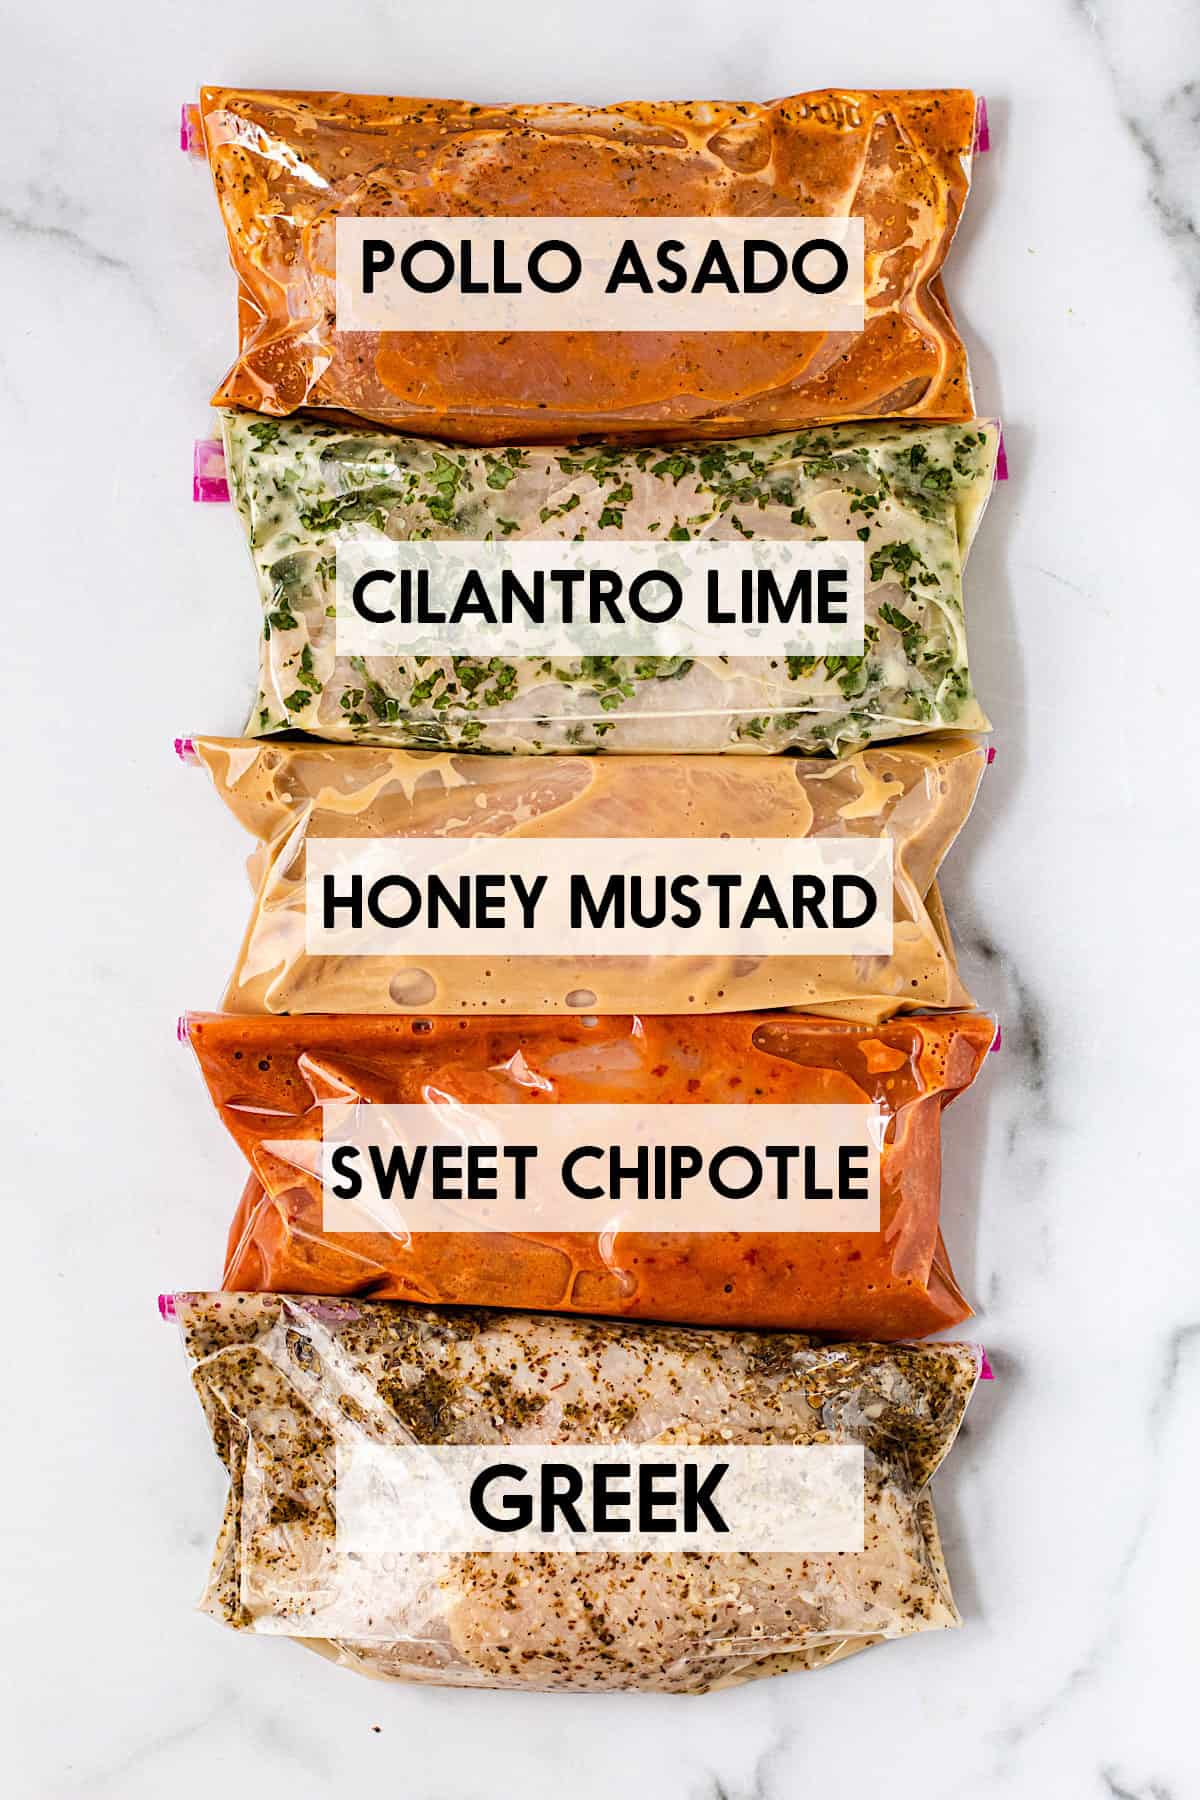 5 easy chicken marinade recipes in bags with a text overlay of the names.